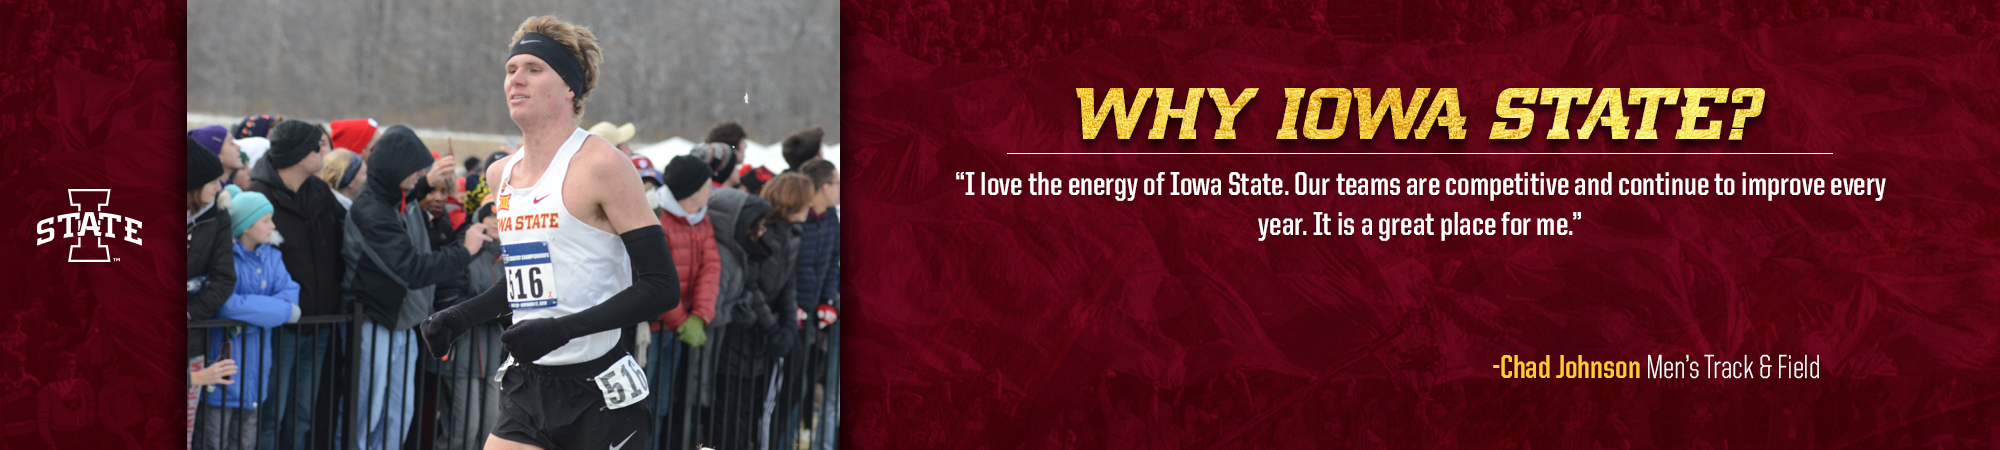 Iowa State dating lover